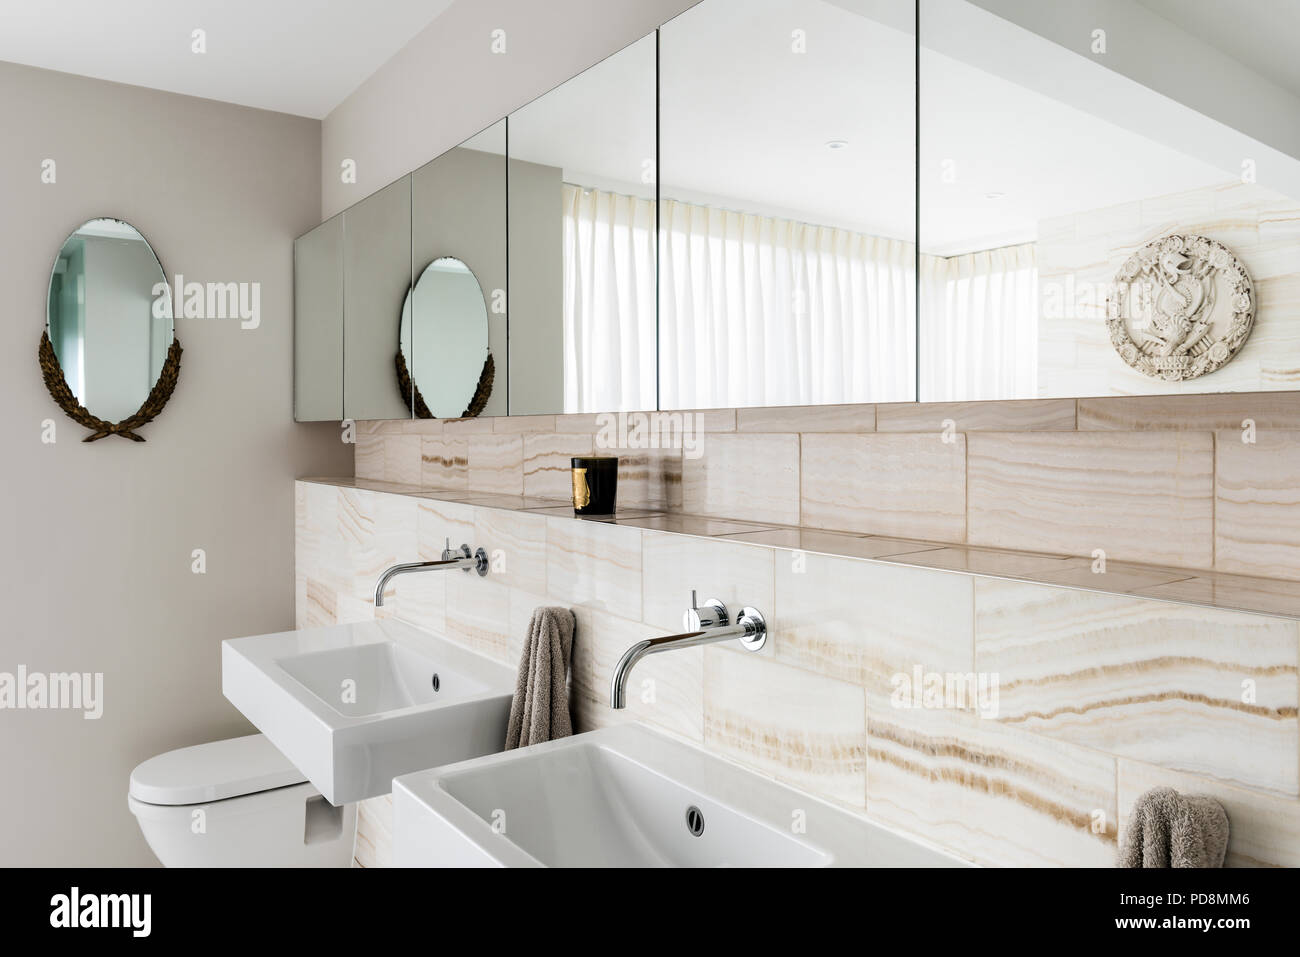 Mirrored cabinets above recessed marble shelf amd washbasins - Stock Image